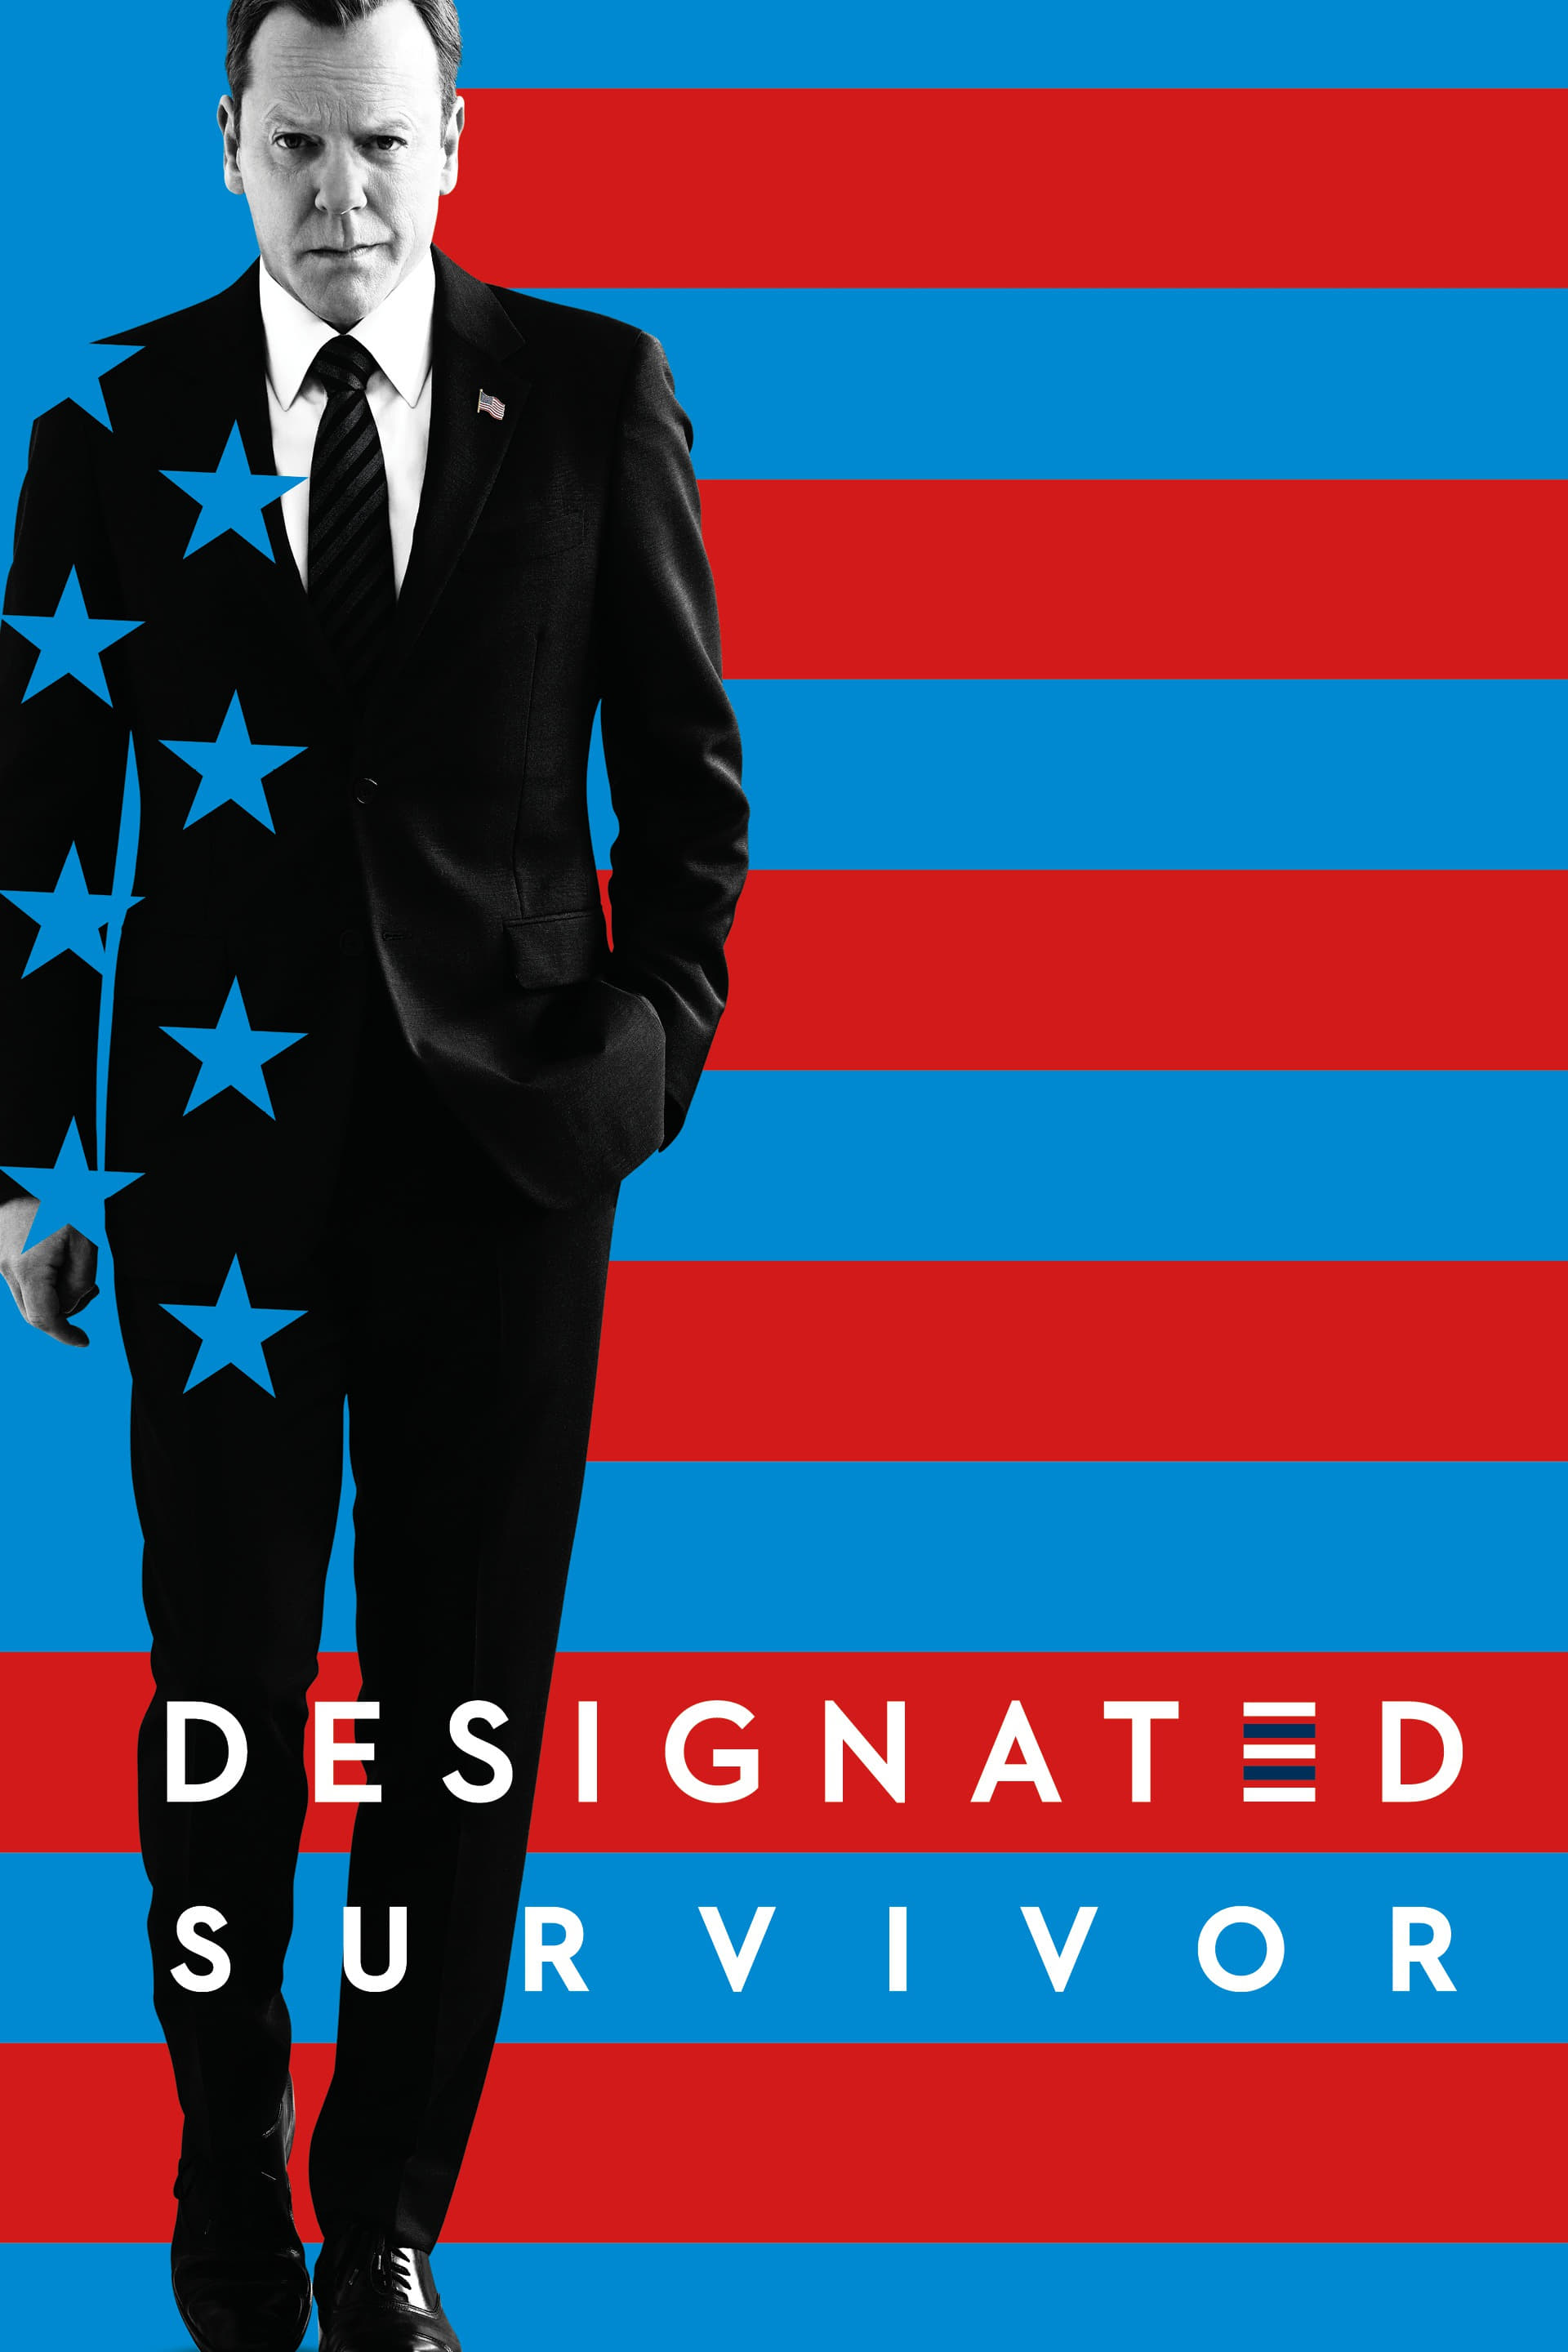 image for Designated Survivor